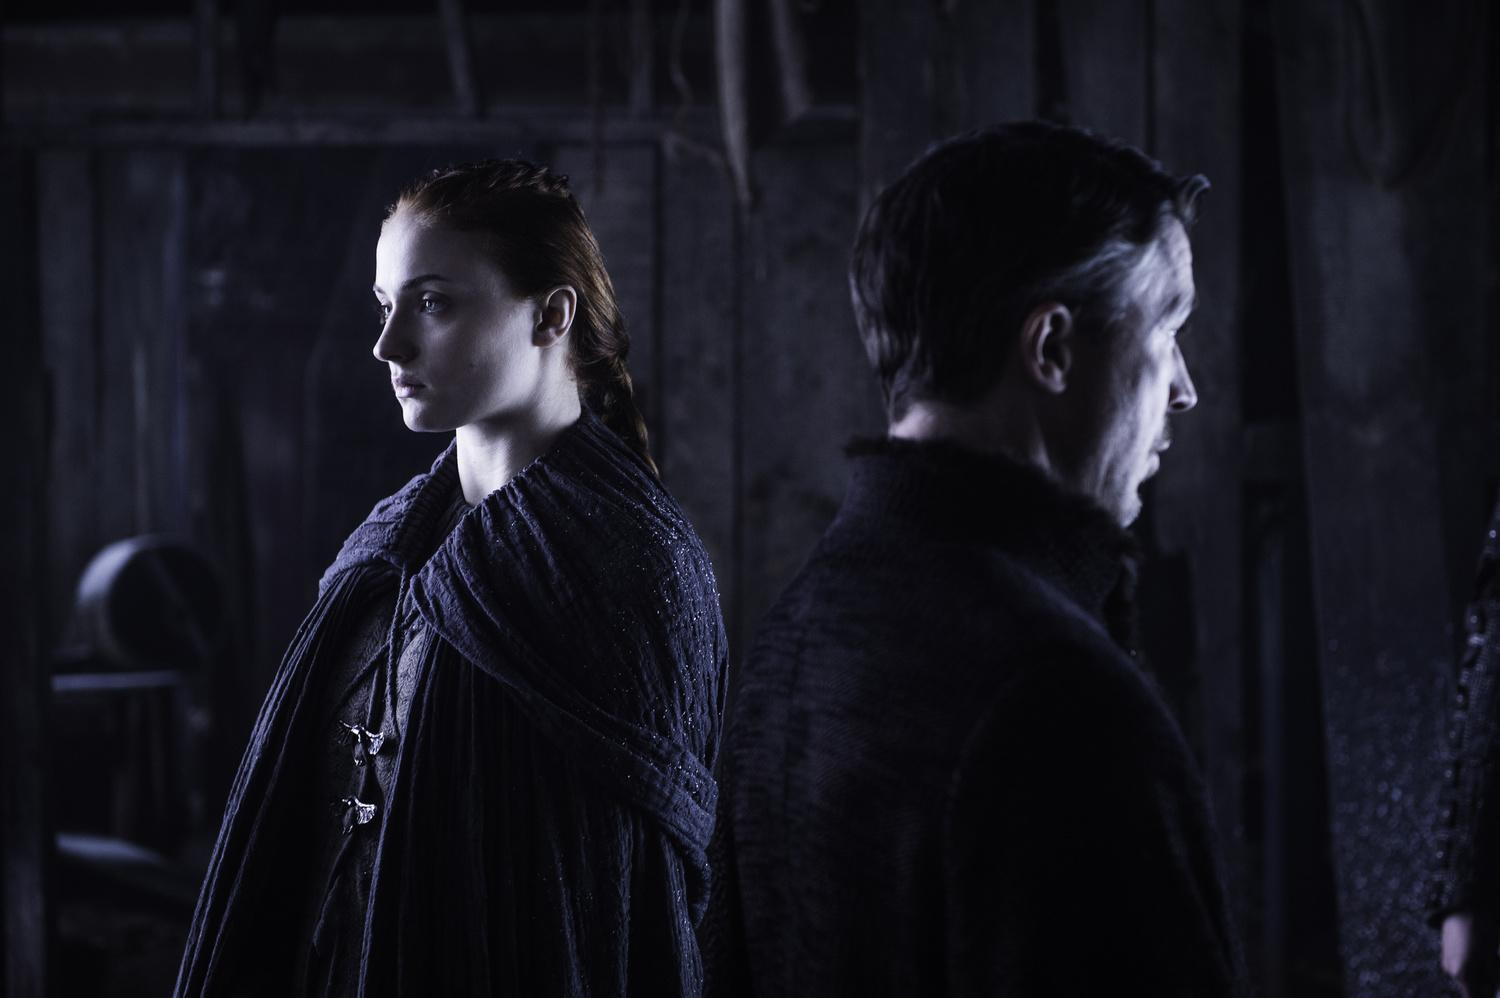 Sophie Turner as Sansa Stark and Aidan Gillen as Petyr